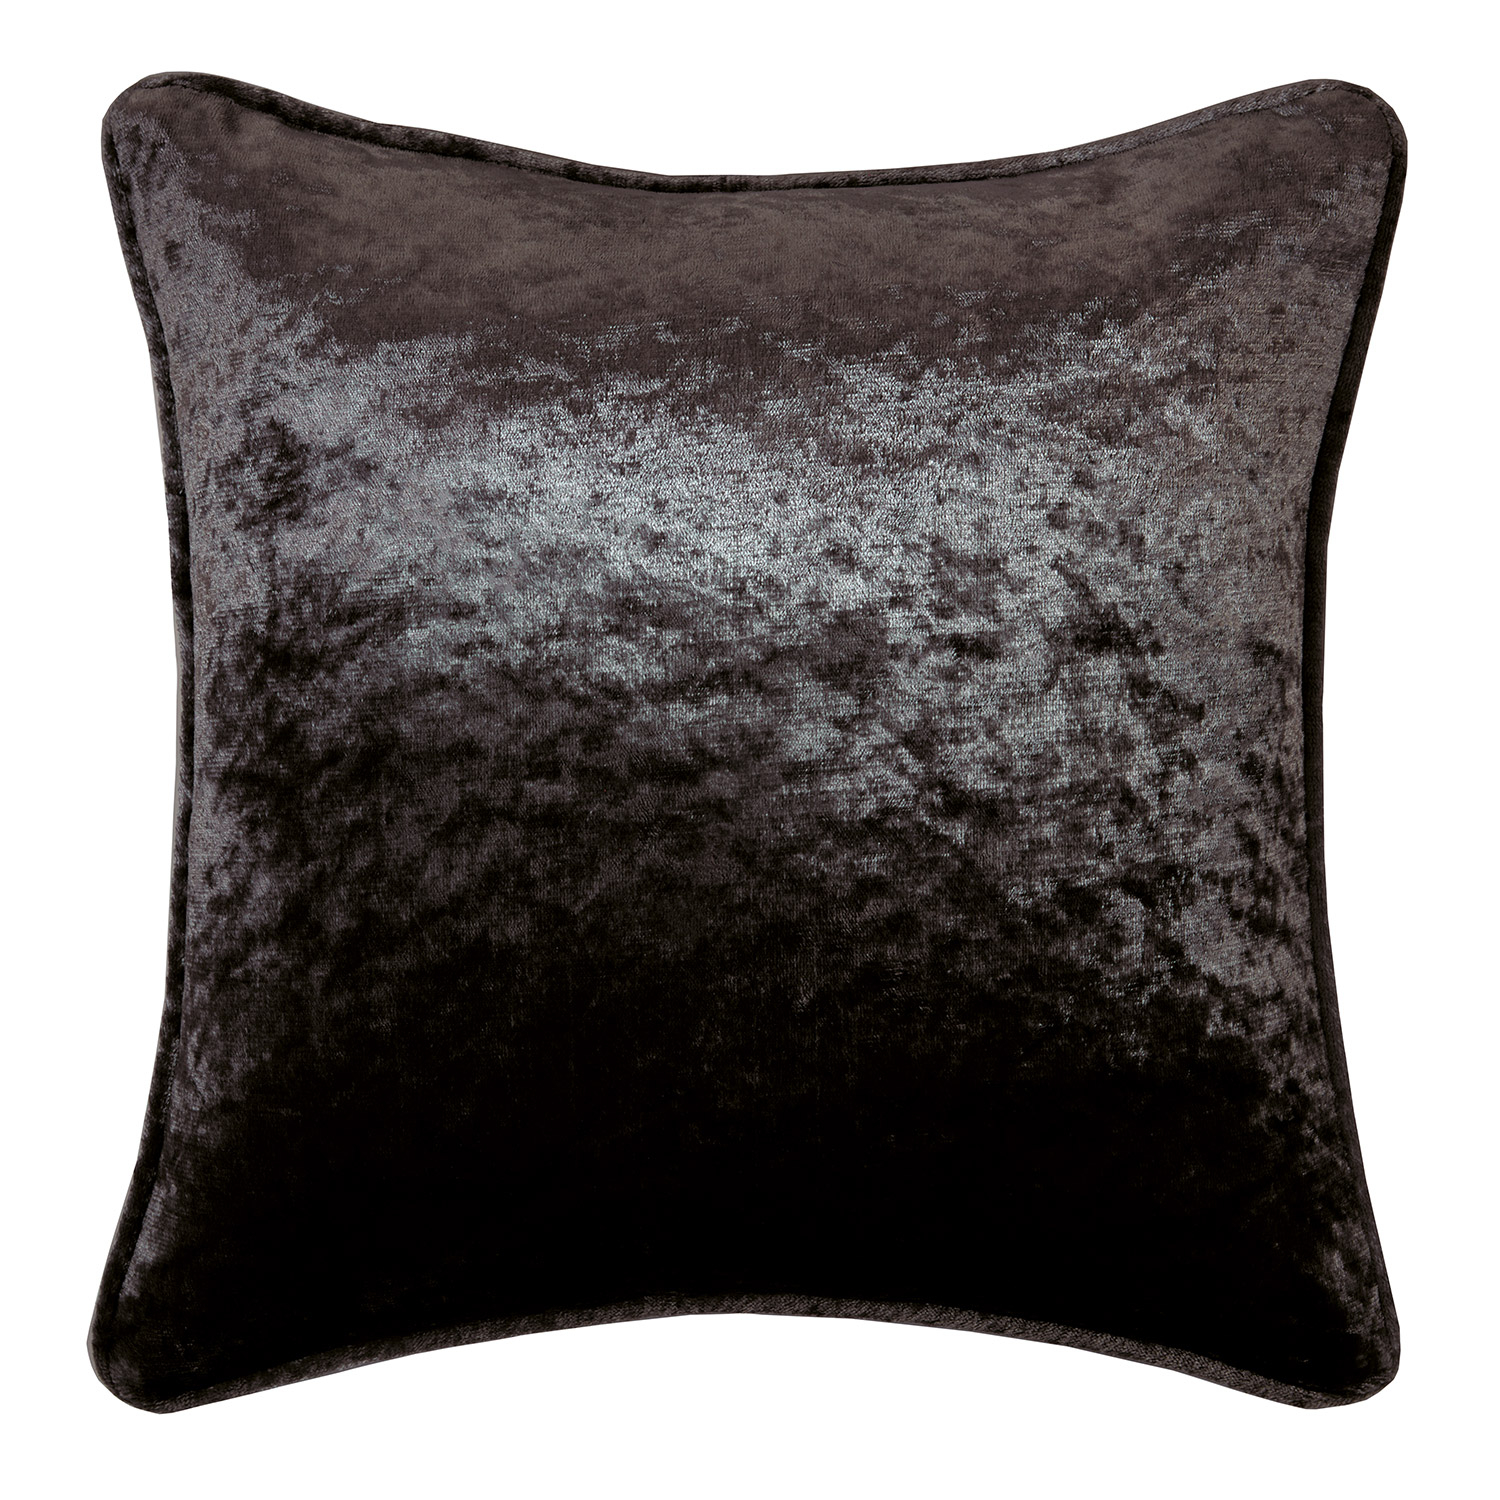 Allure Charcoal Crushed Velvet Filled Square Cushion